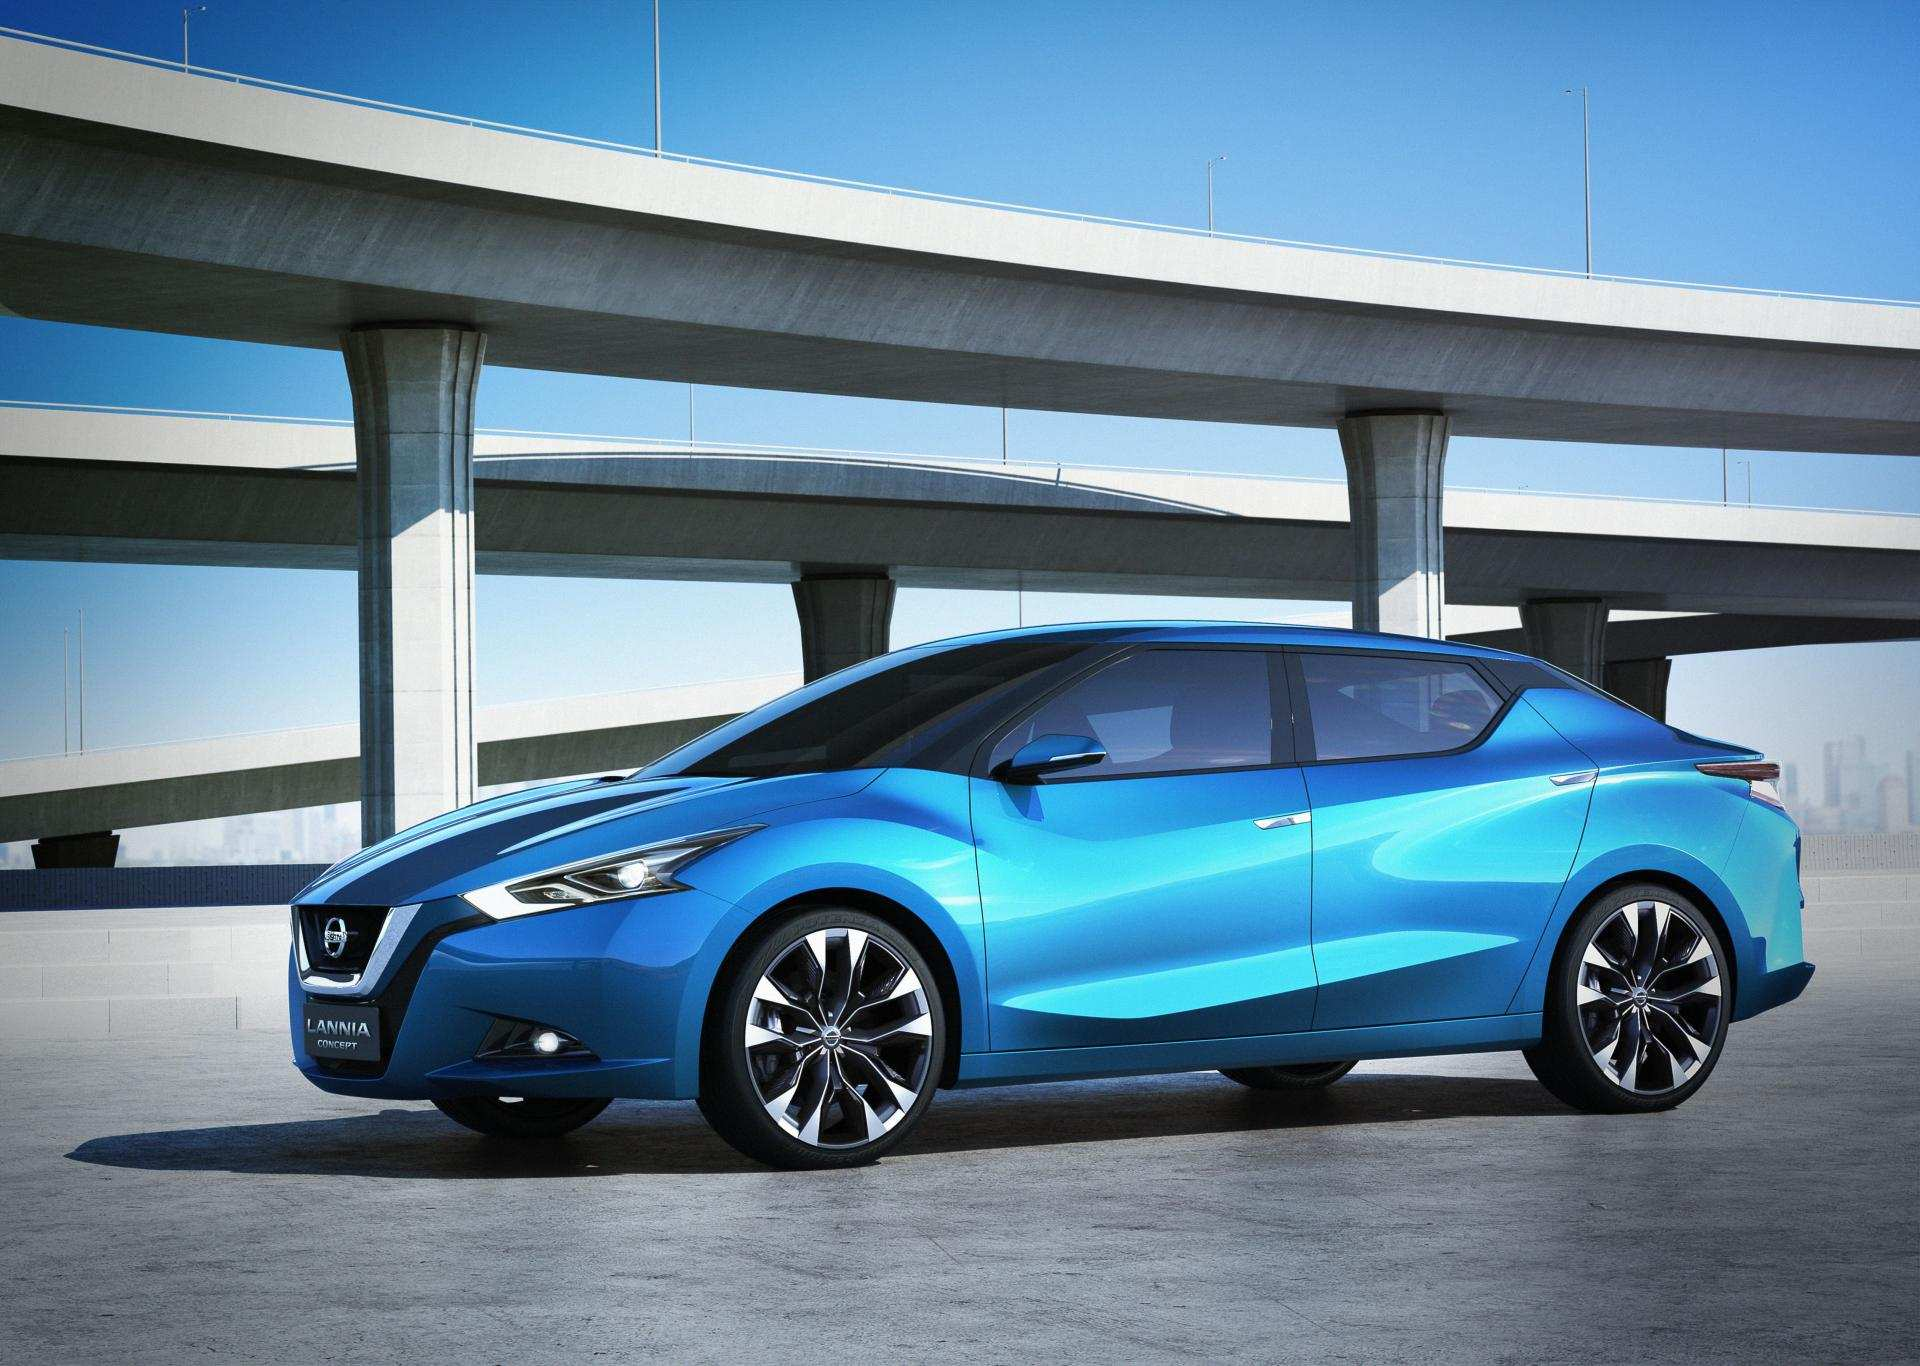 40 Best 2020 Nissan Lannia Picture